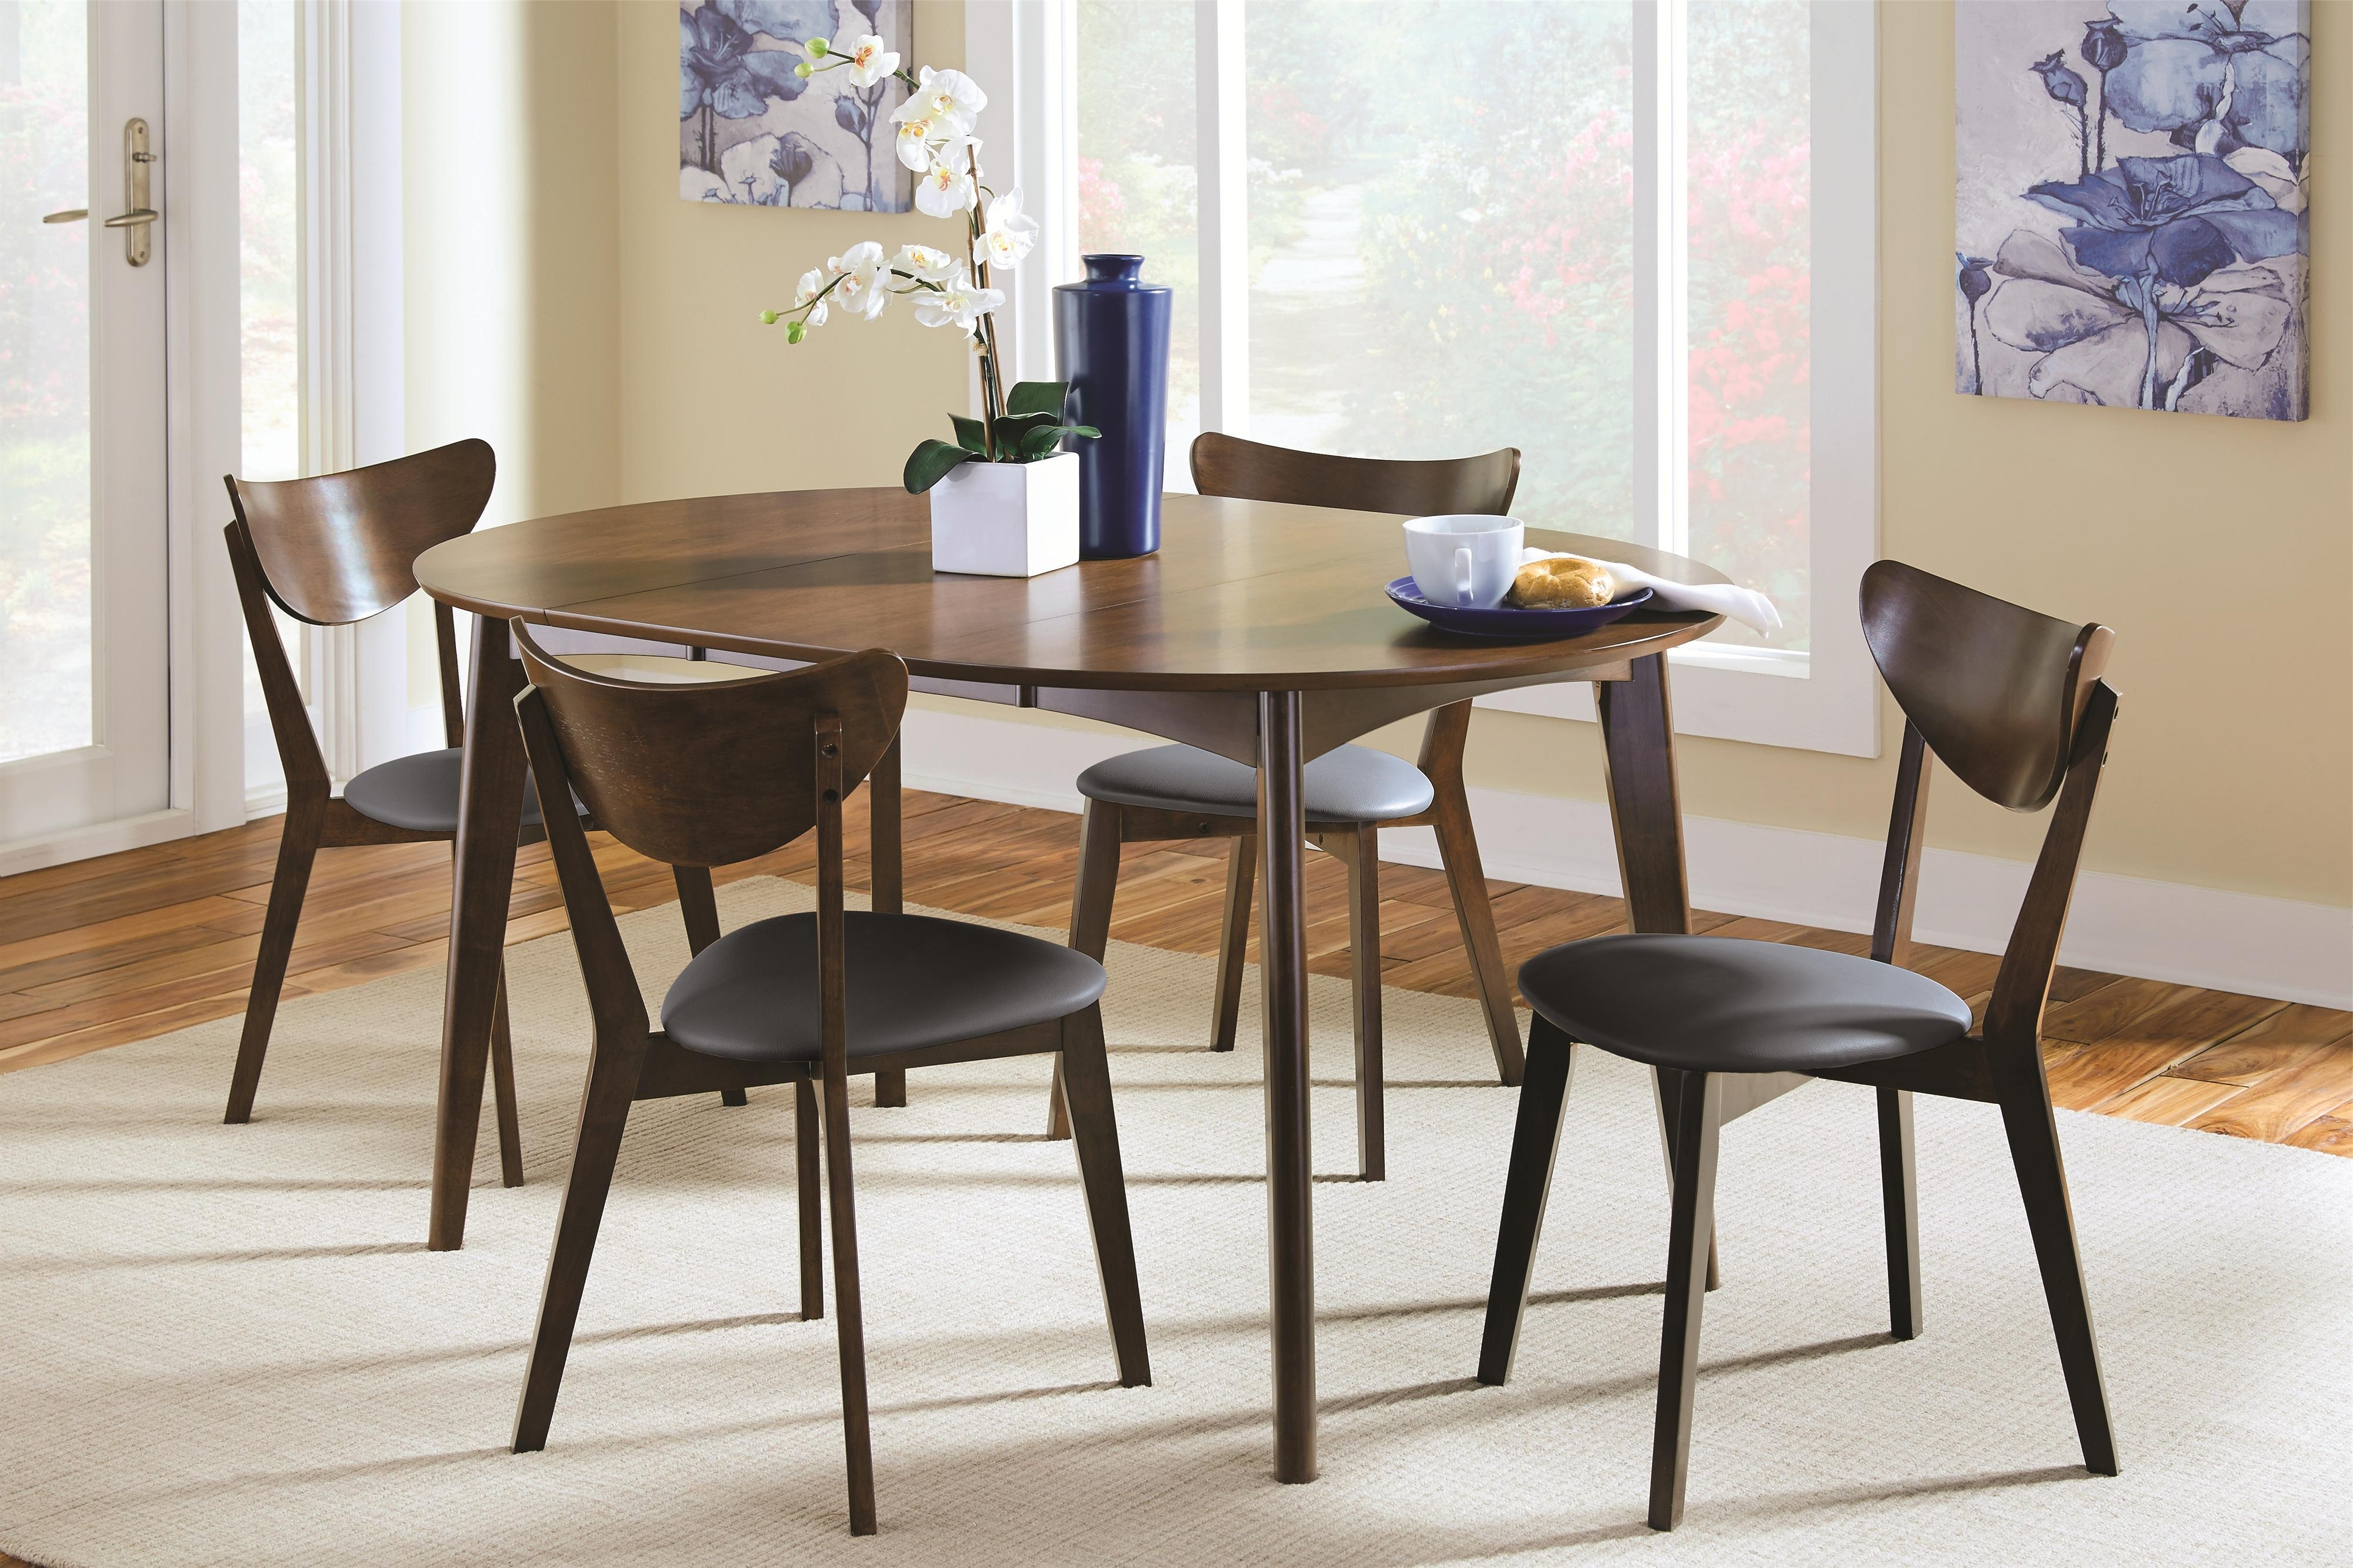 Contemporary Dining Room Tables And Chairs Regarding 2017 Coaster Malone Mid Century Modern 5 Piece Solid Wood Dining Set (View 3 of 25)